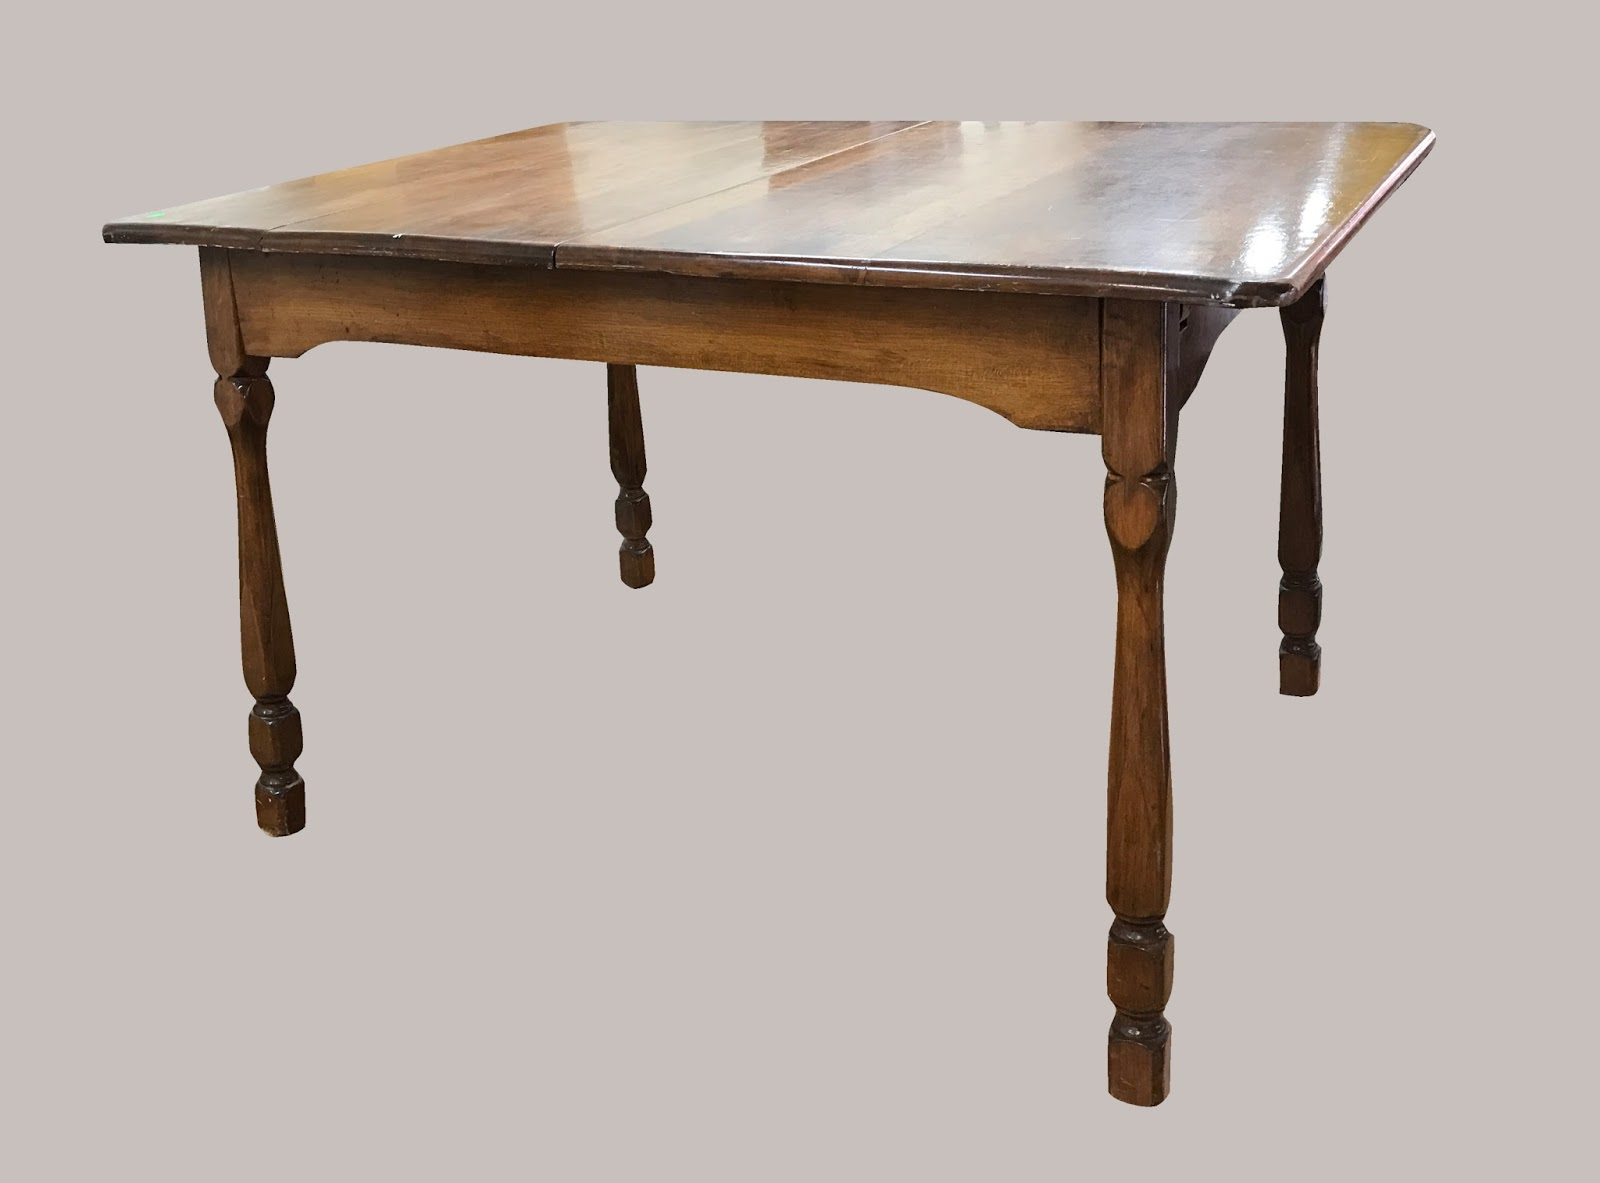 Uhuru Furniture & Collectibles: Maple Kitchen Table with ...